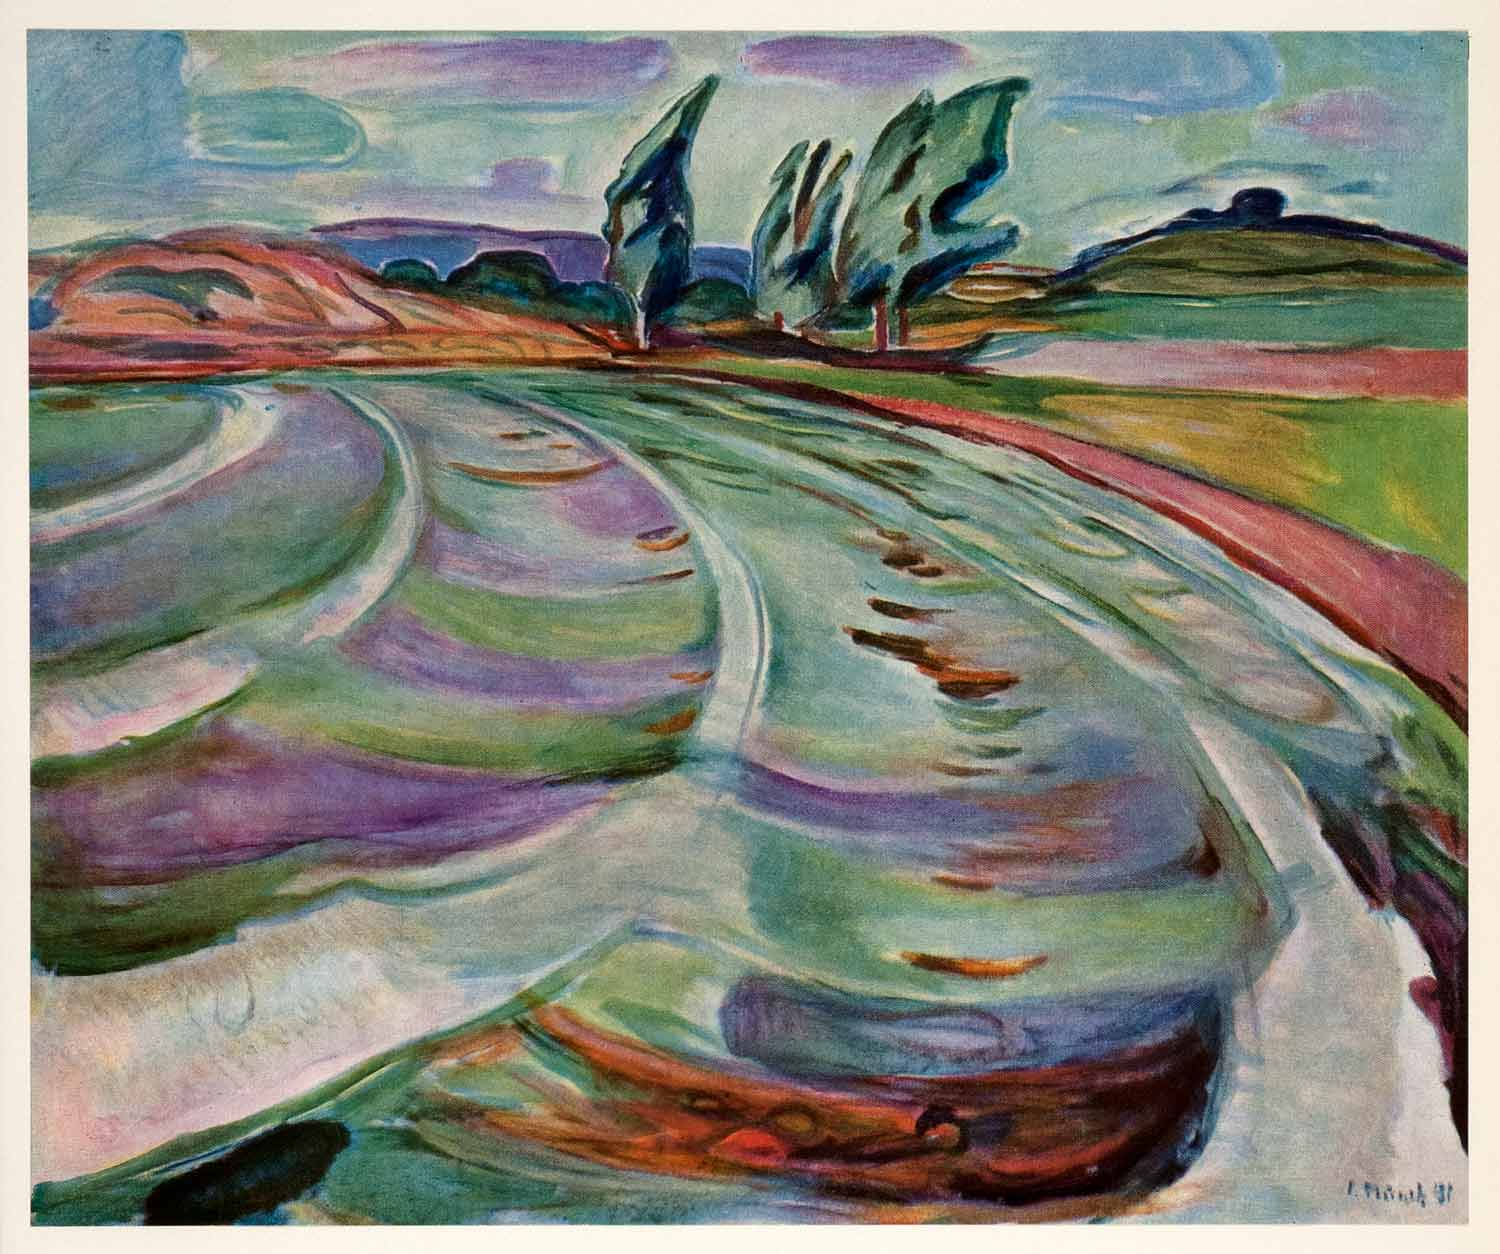 1958 Tipped-In Print Edvard Munch Beating Waves Symbolist Color Landscape Art